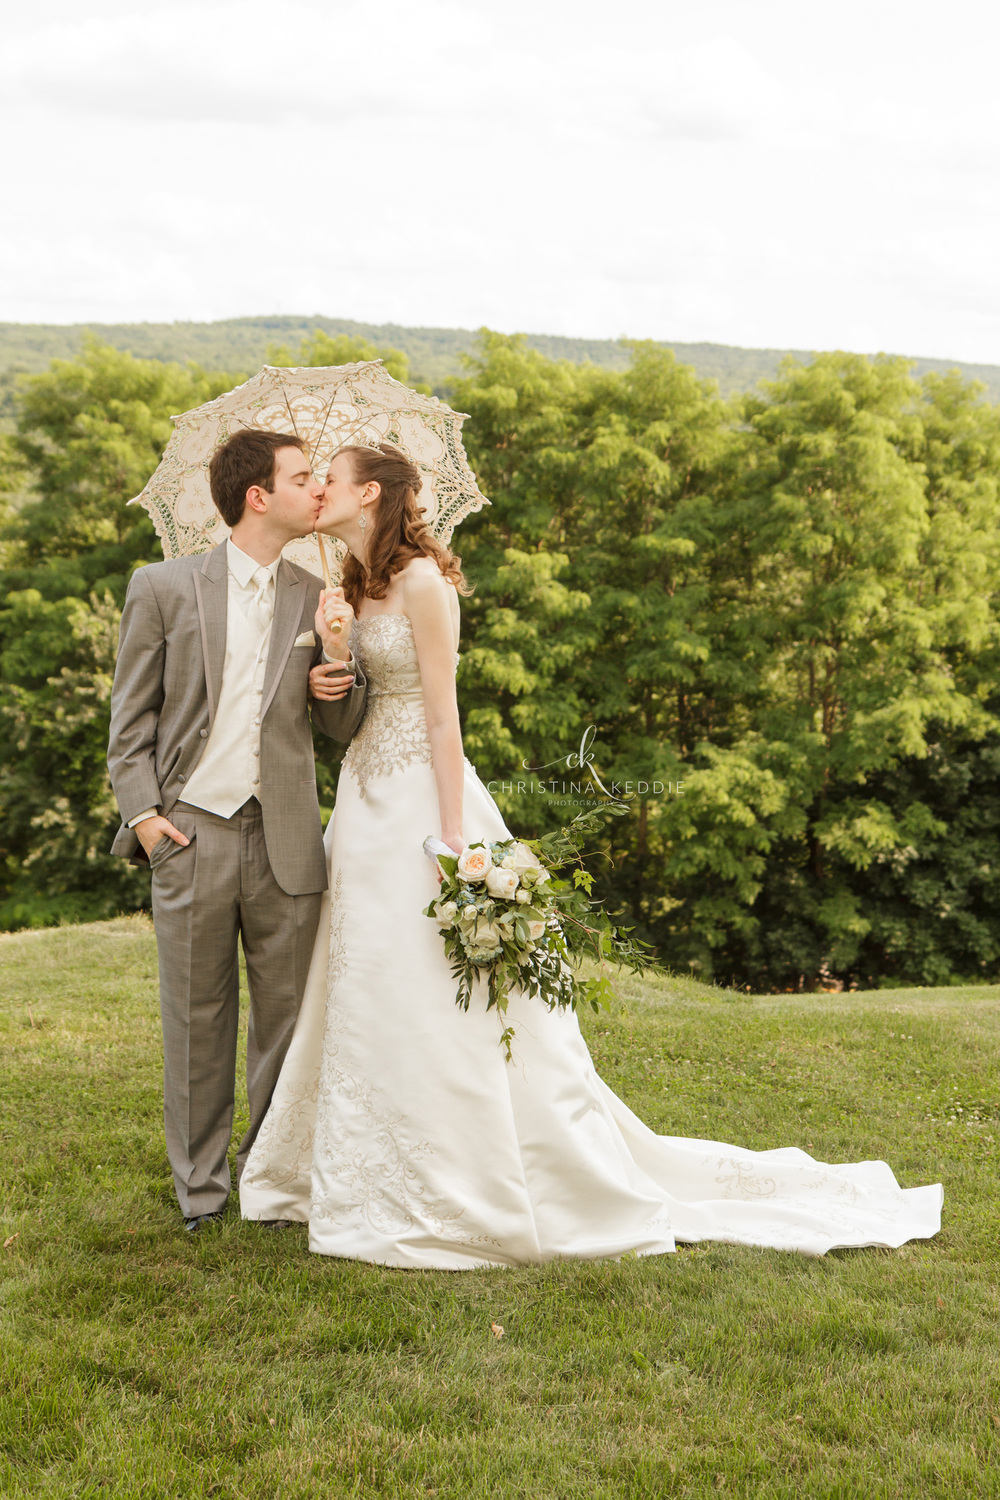 Bride and groom kissing under parasol | Christina Keddie Photography | Finger Lakes NY wedding photographer